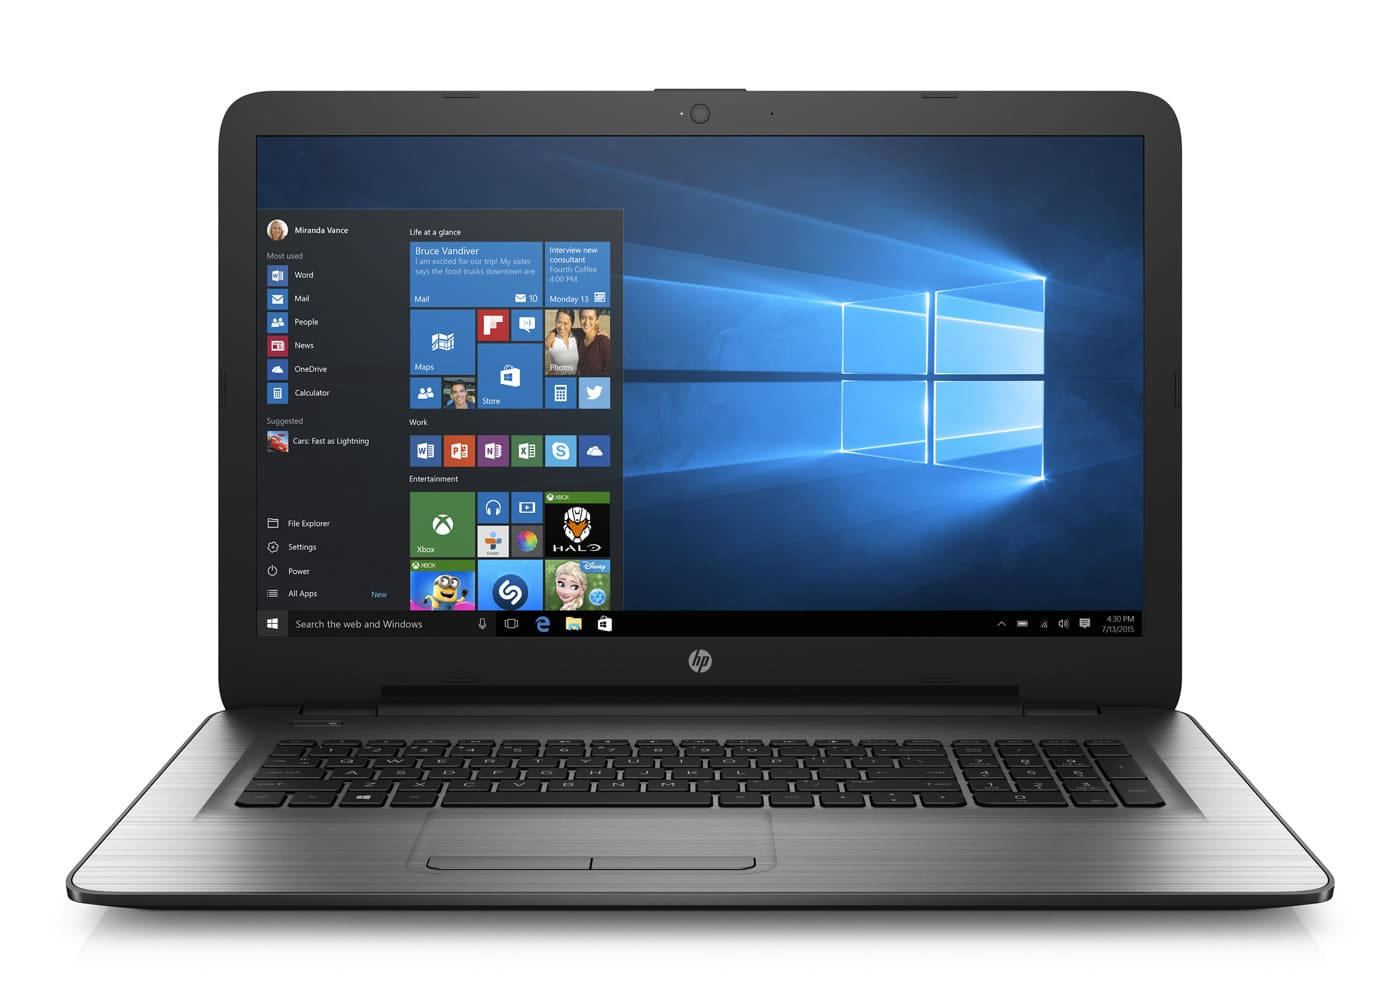 HP 17-x118nf à 799€, PC portable 17 pouces IPS Full SSD 256 i5 Kaby Radeon